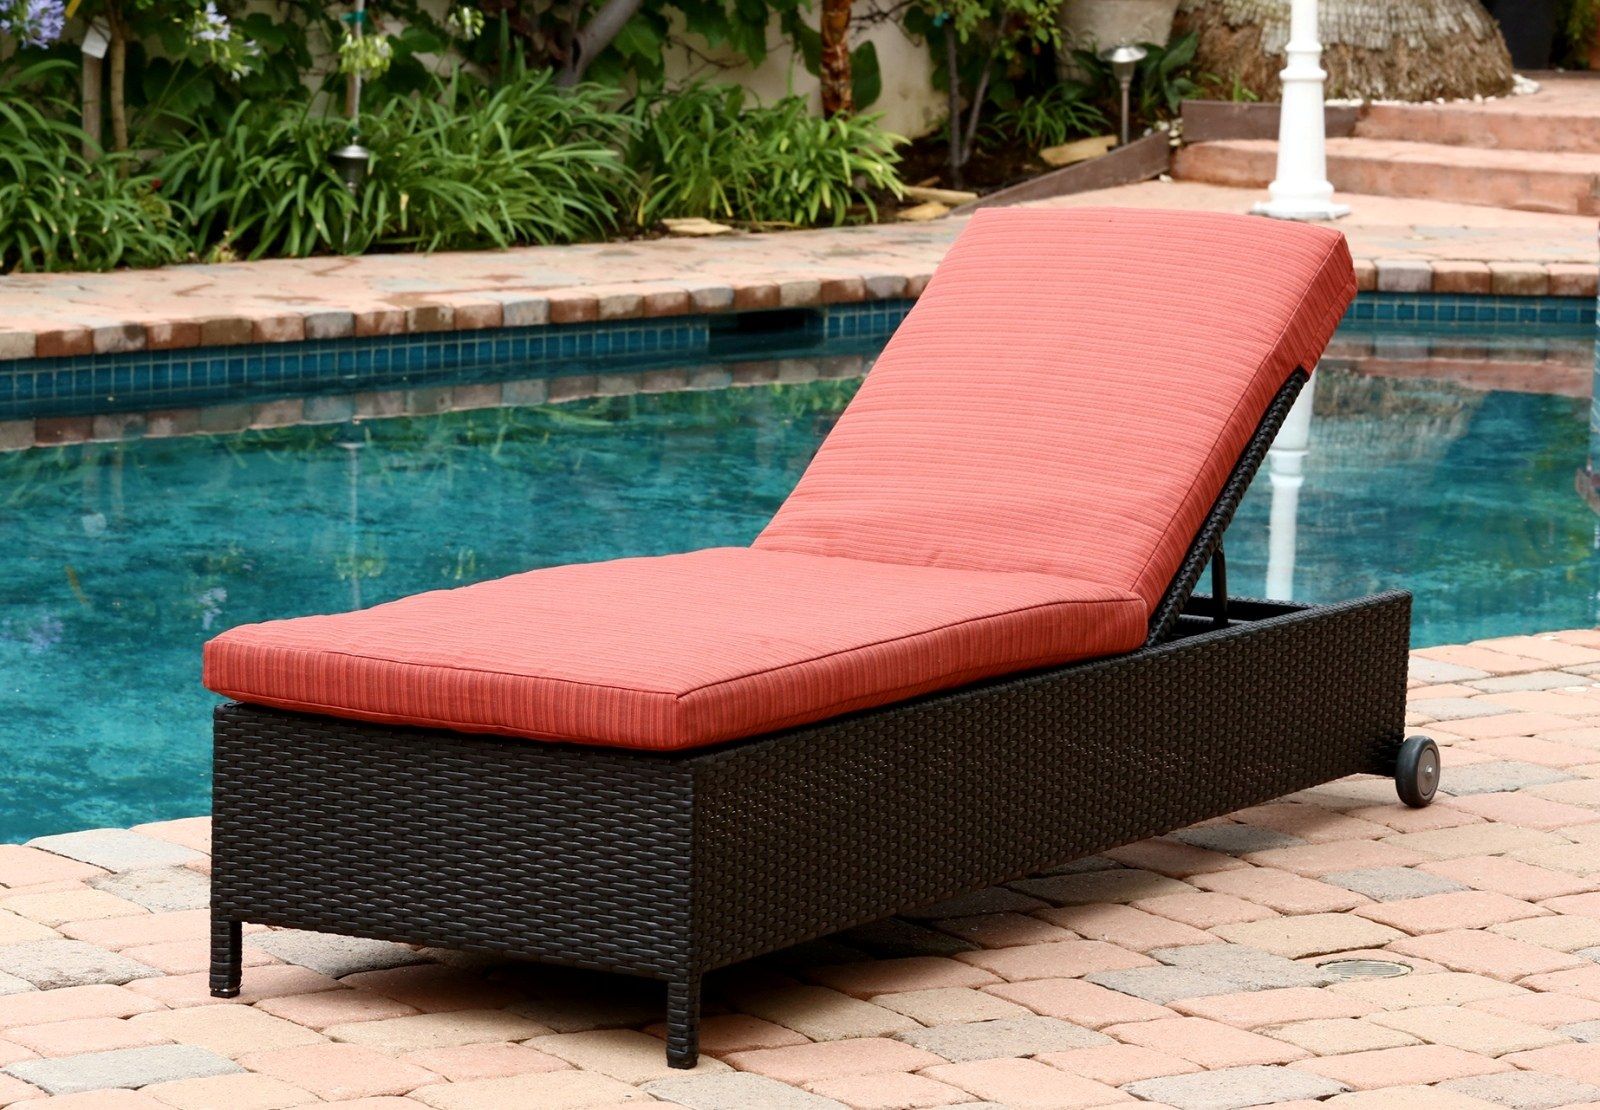 Ventura outdoor black wicker chaise lounge with cushion by for Black outdoor wicker chaise